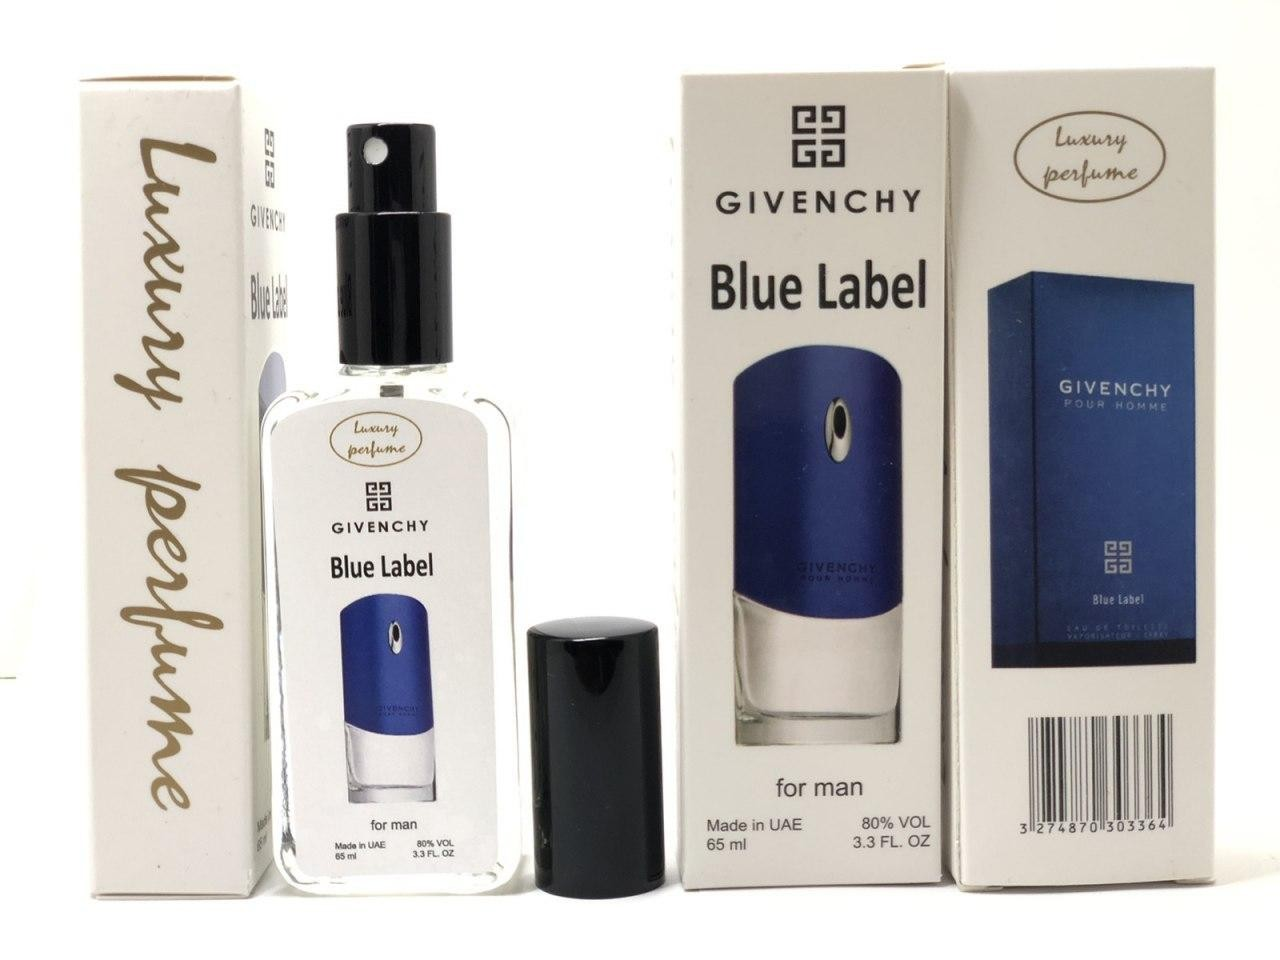 Givenchy pour Homme Blue Label edp 65ml luxury perfume